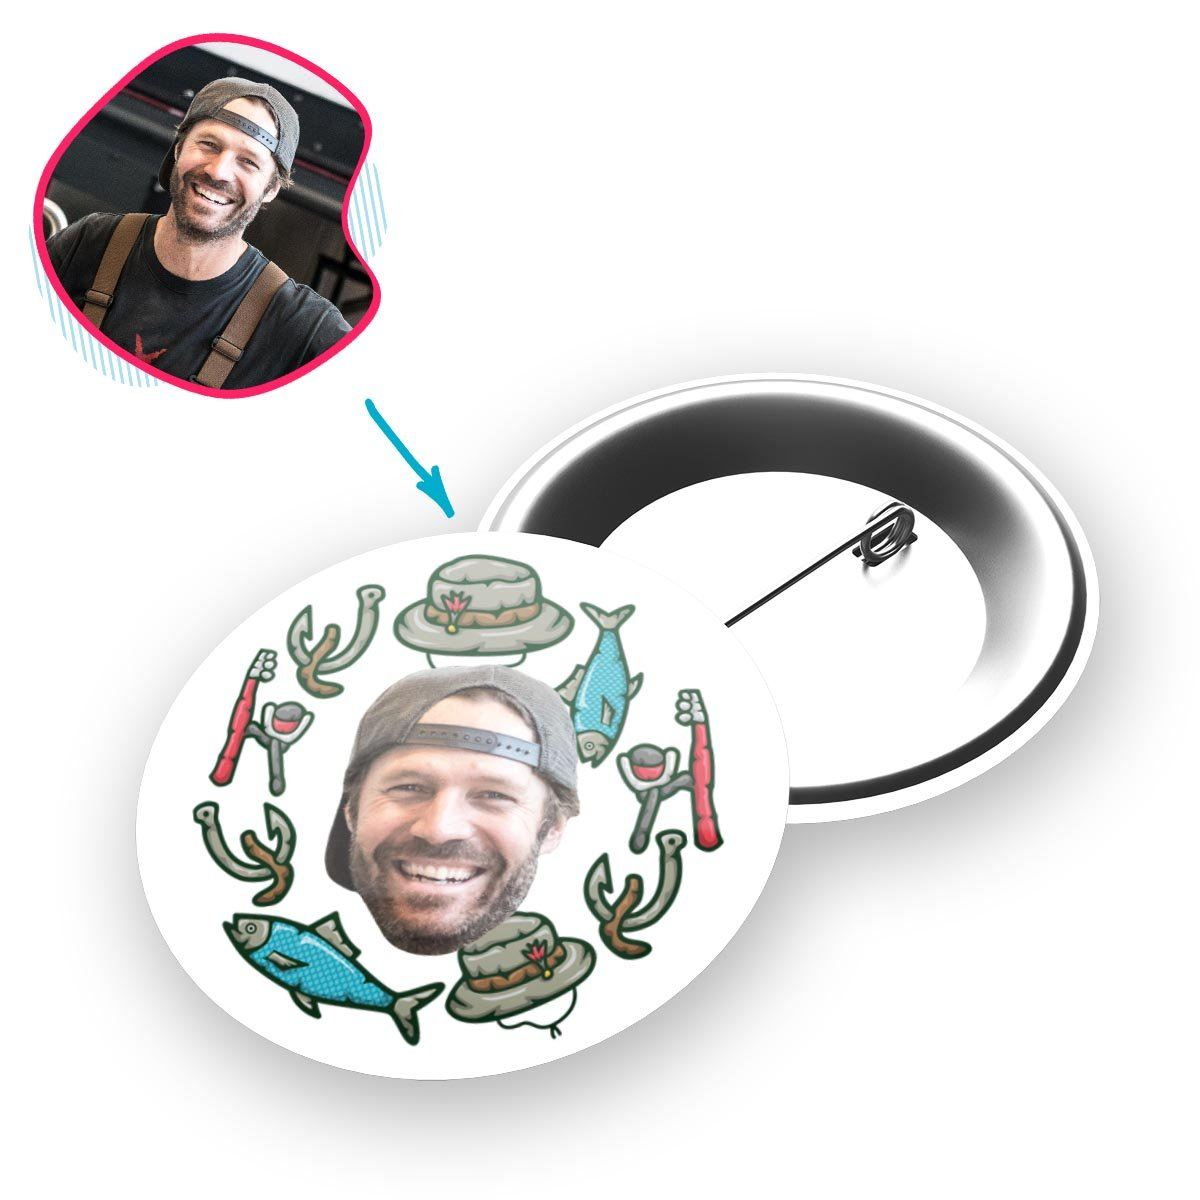 White Fishing personalized pin with photo of face printed on it